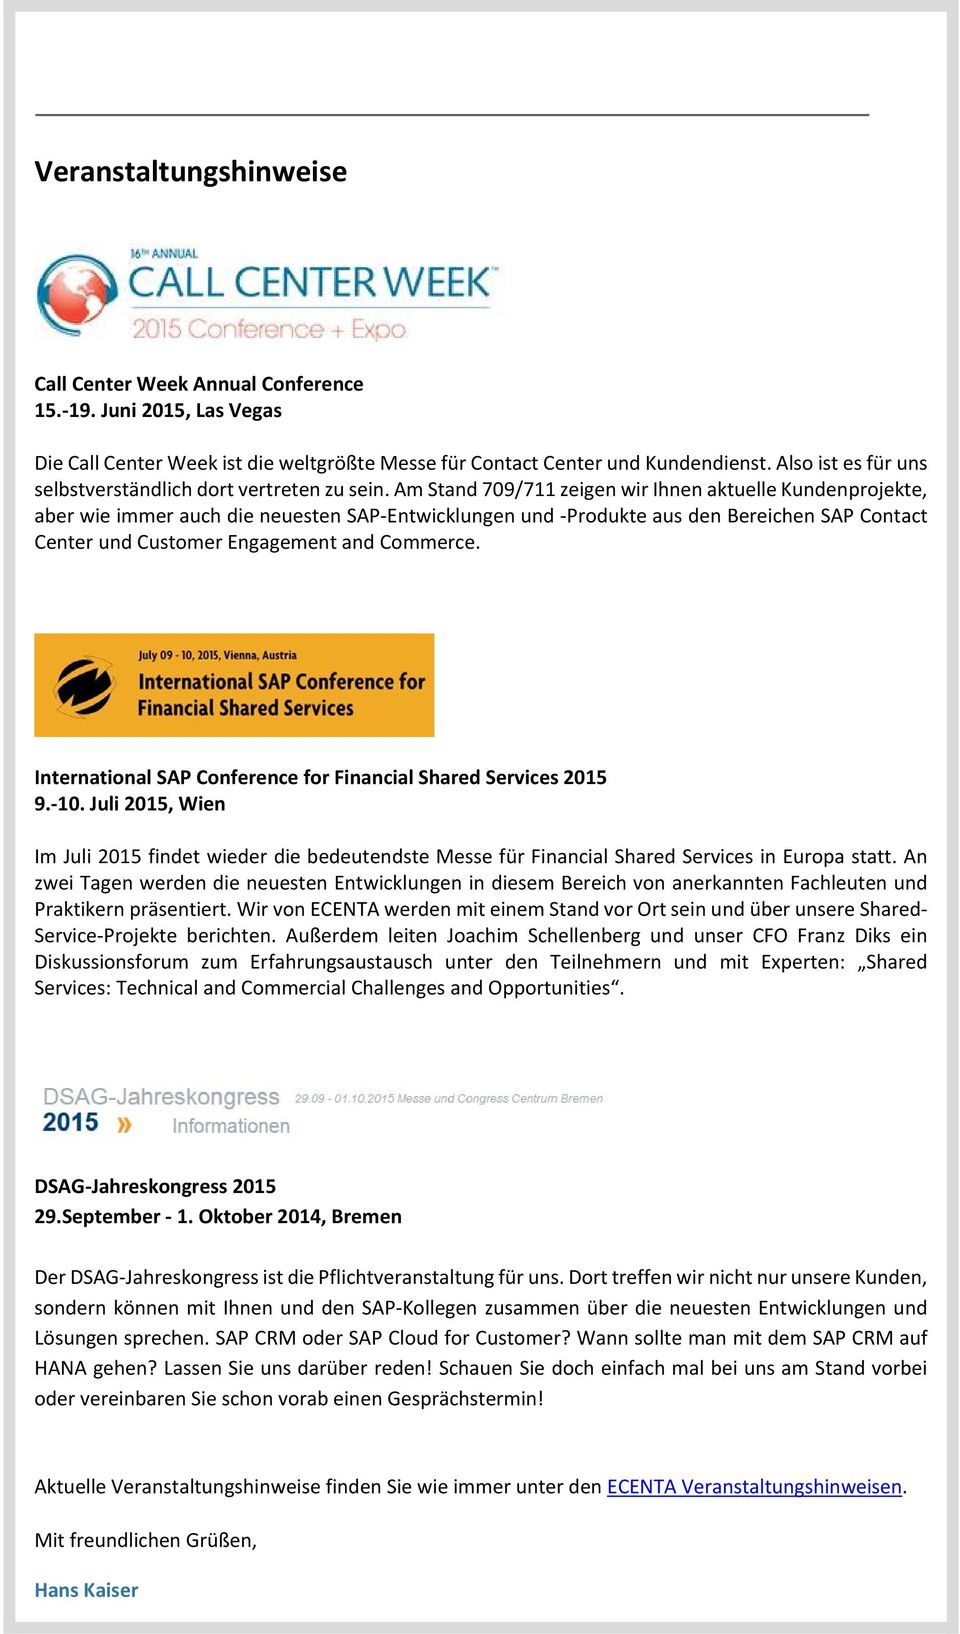 Am Stand 709/711 zeigen wir Ihnen aktuelle Kundenprojekte, aber wie immer auch die neuesten SAP-Entwicklungen und -Produkte aus den Bereichen SAP Contact Center und Customer Engagement and Commerce.